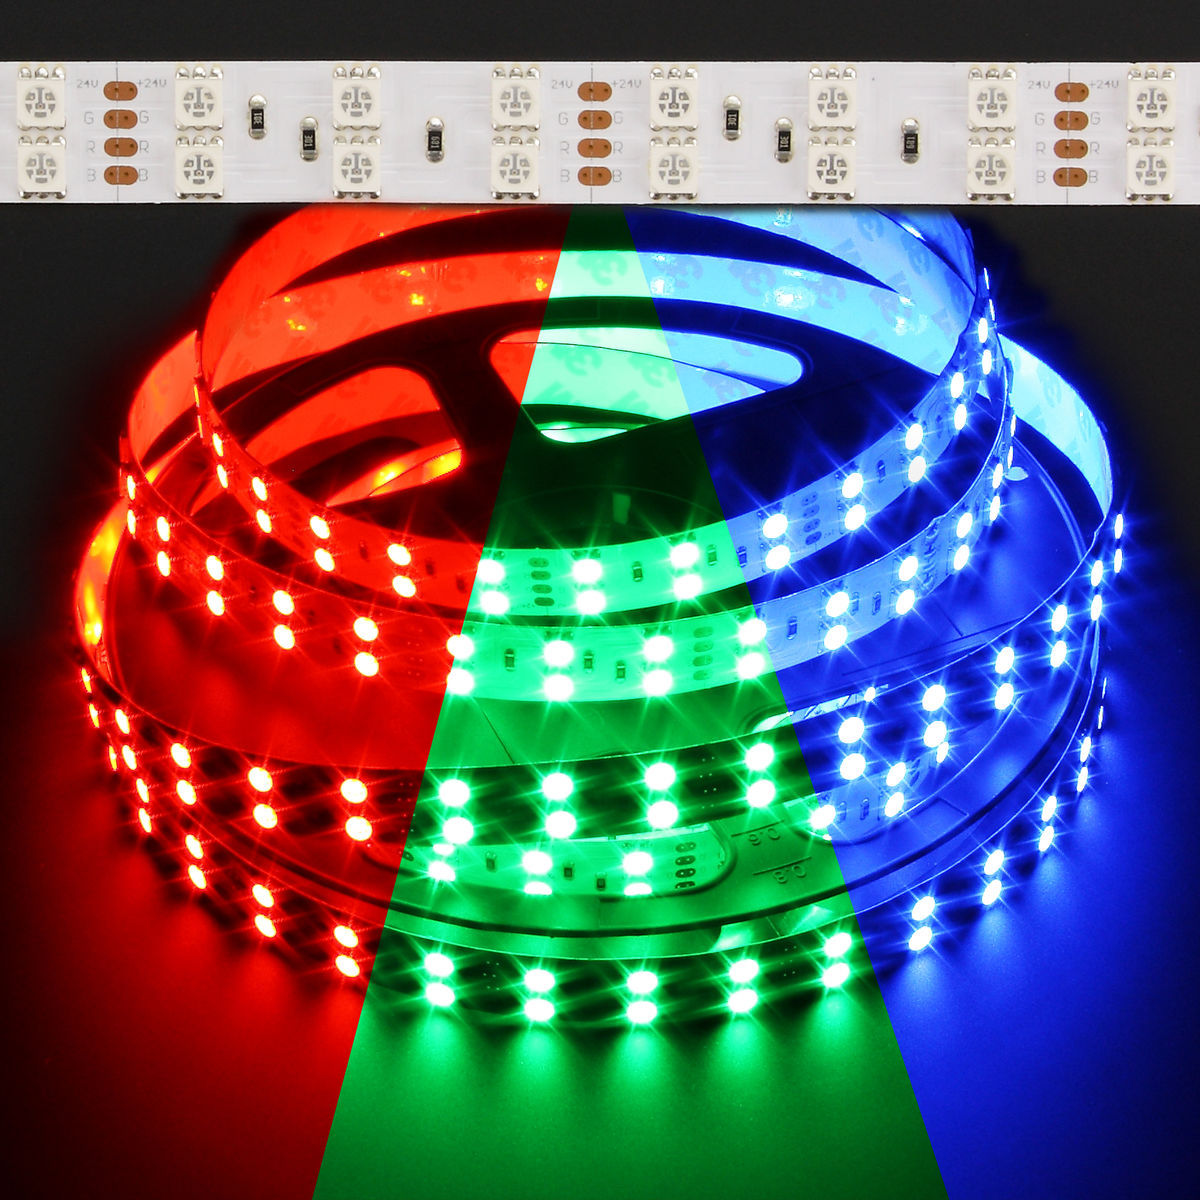 Color Changing Led Light Strips: Color Changing RGB 5050 Double Row 144W LED Strip Light